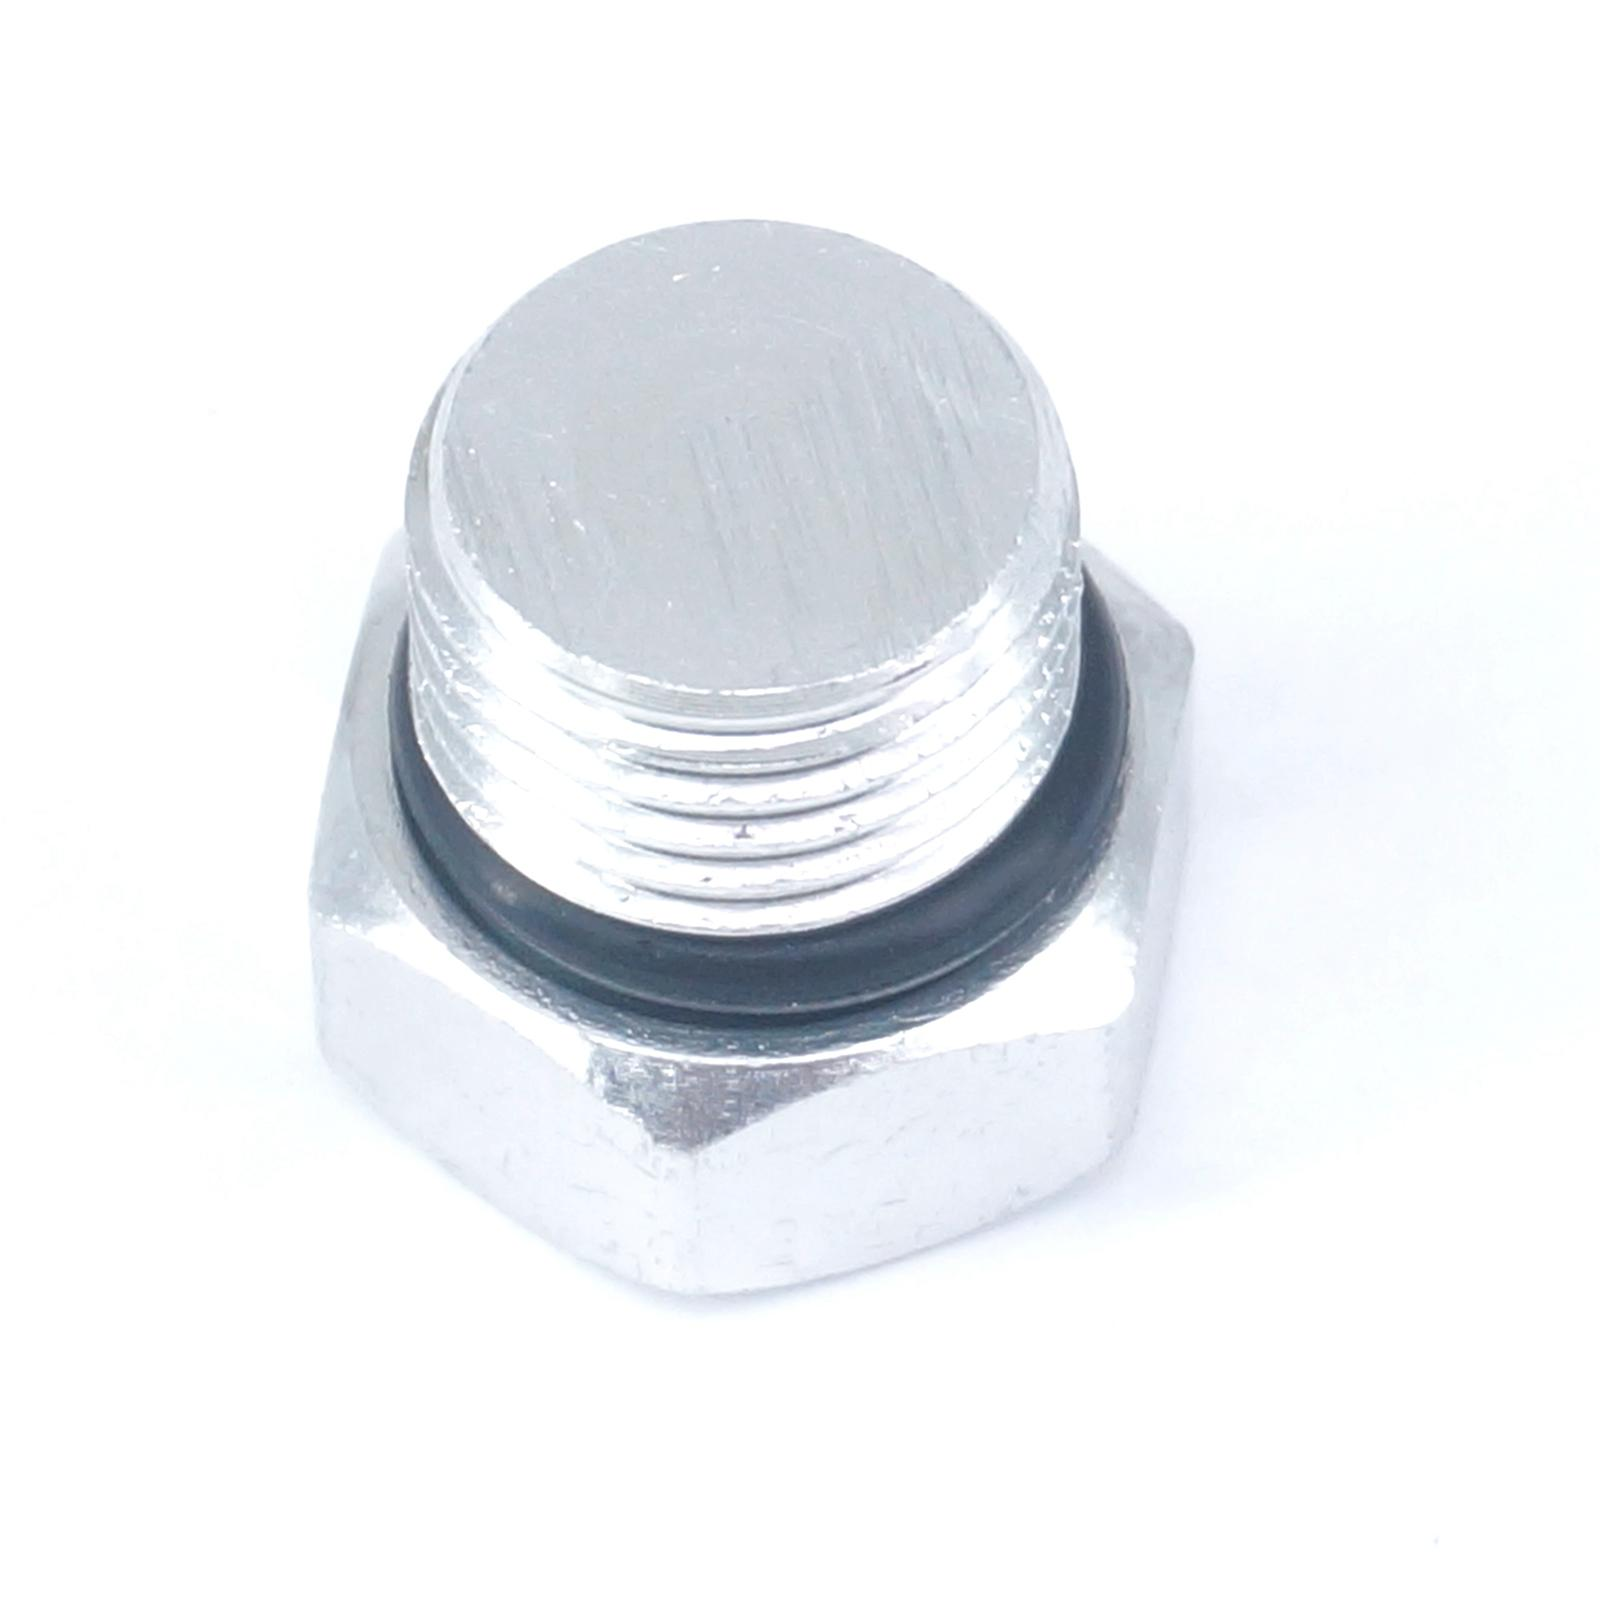 1/4 BSP Male Solid Aluminum Hex Head Plug End Cap For Pneumatic Manifold 3 8 bsp female thread brass pipe countersunk plug hex head socket pipe fittings end cap